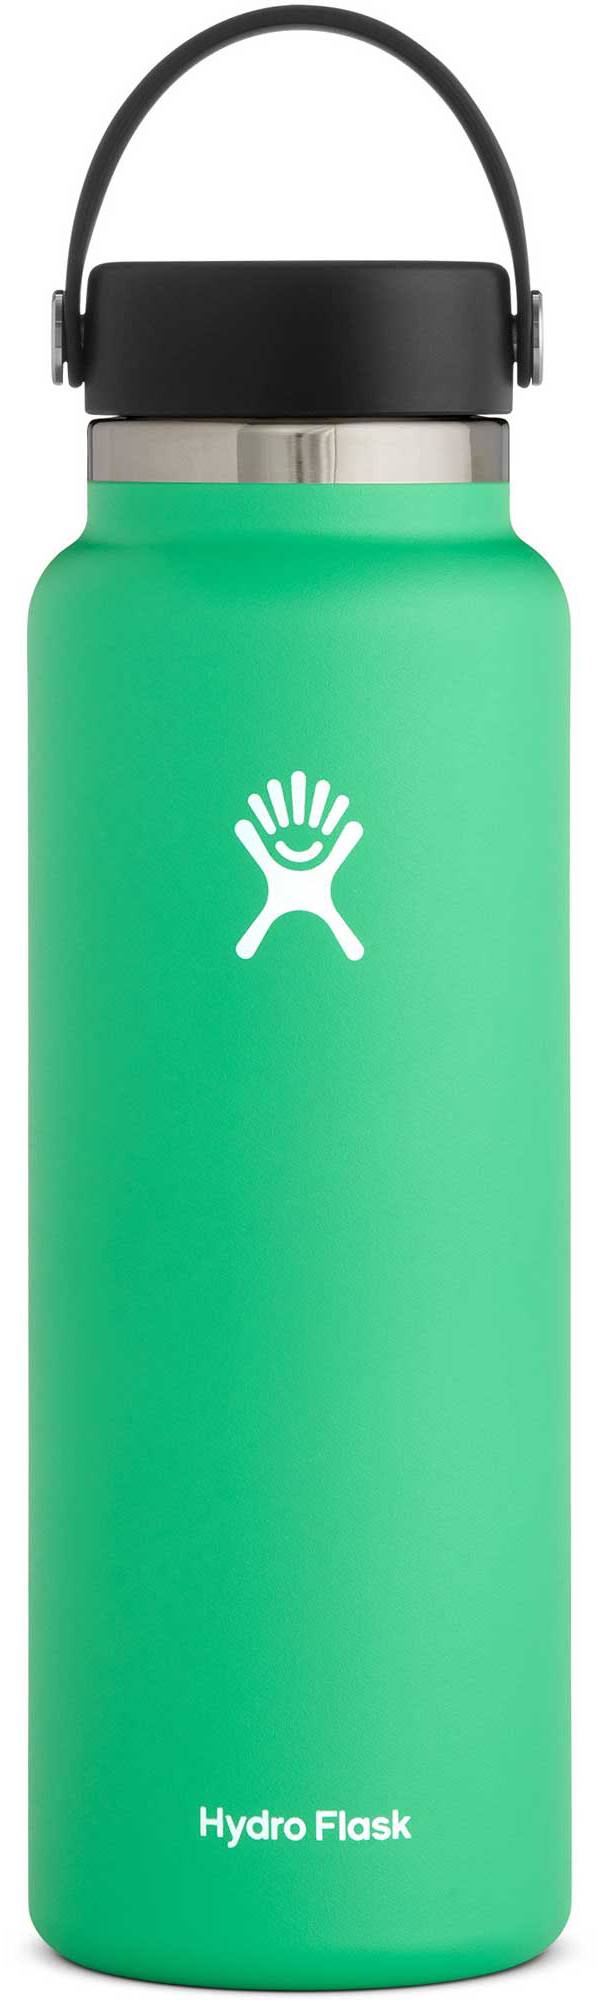 Hydro Flask Wide Mouth 40 oz. Bottle product image